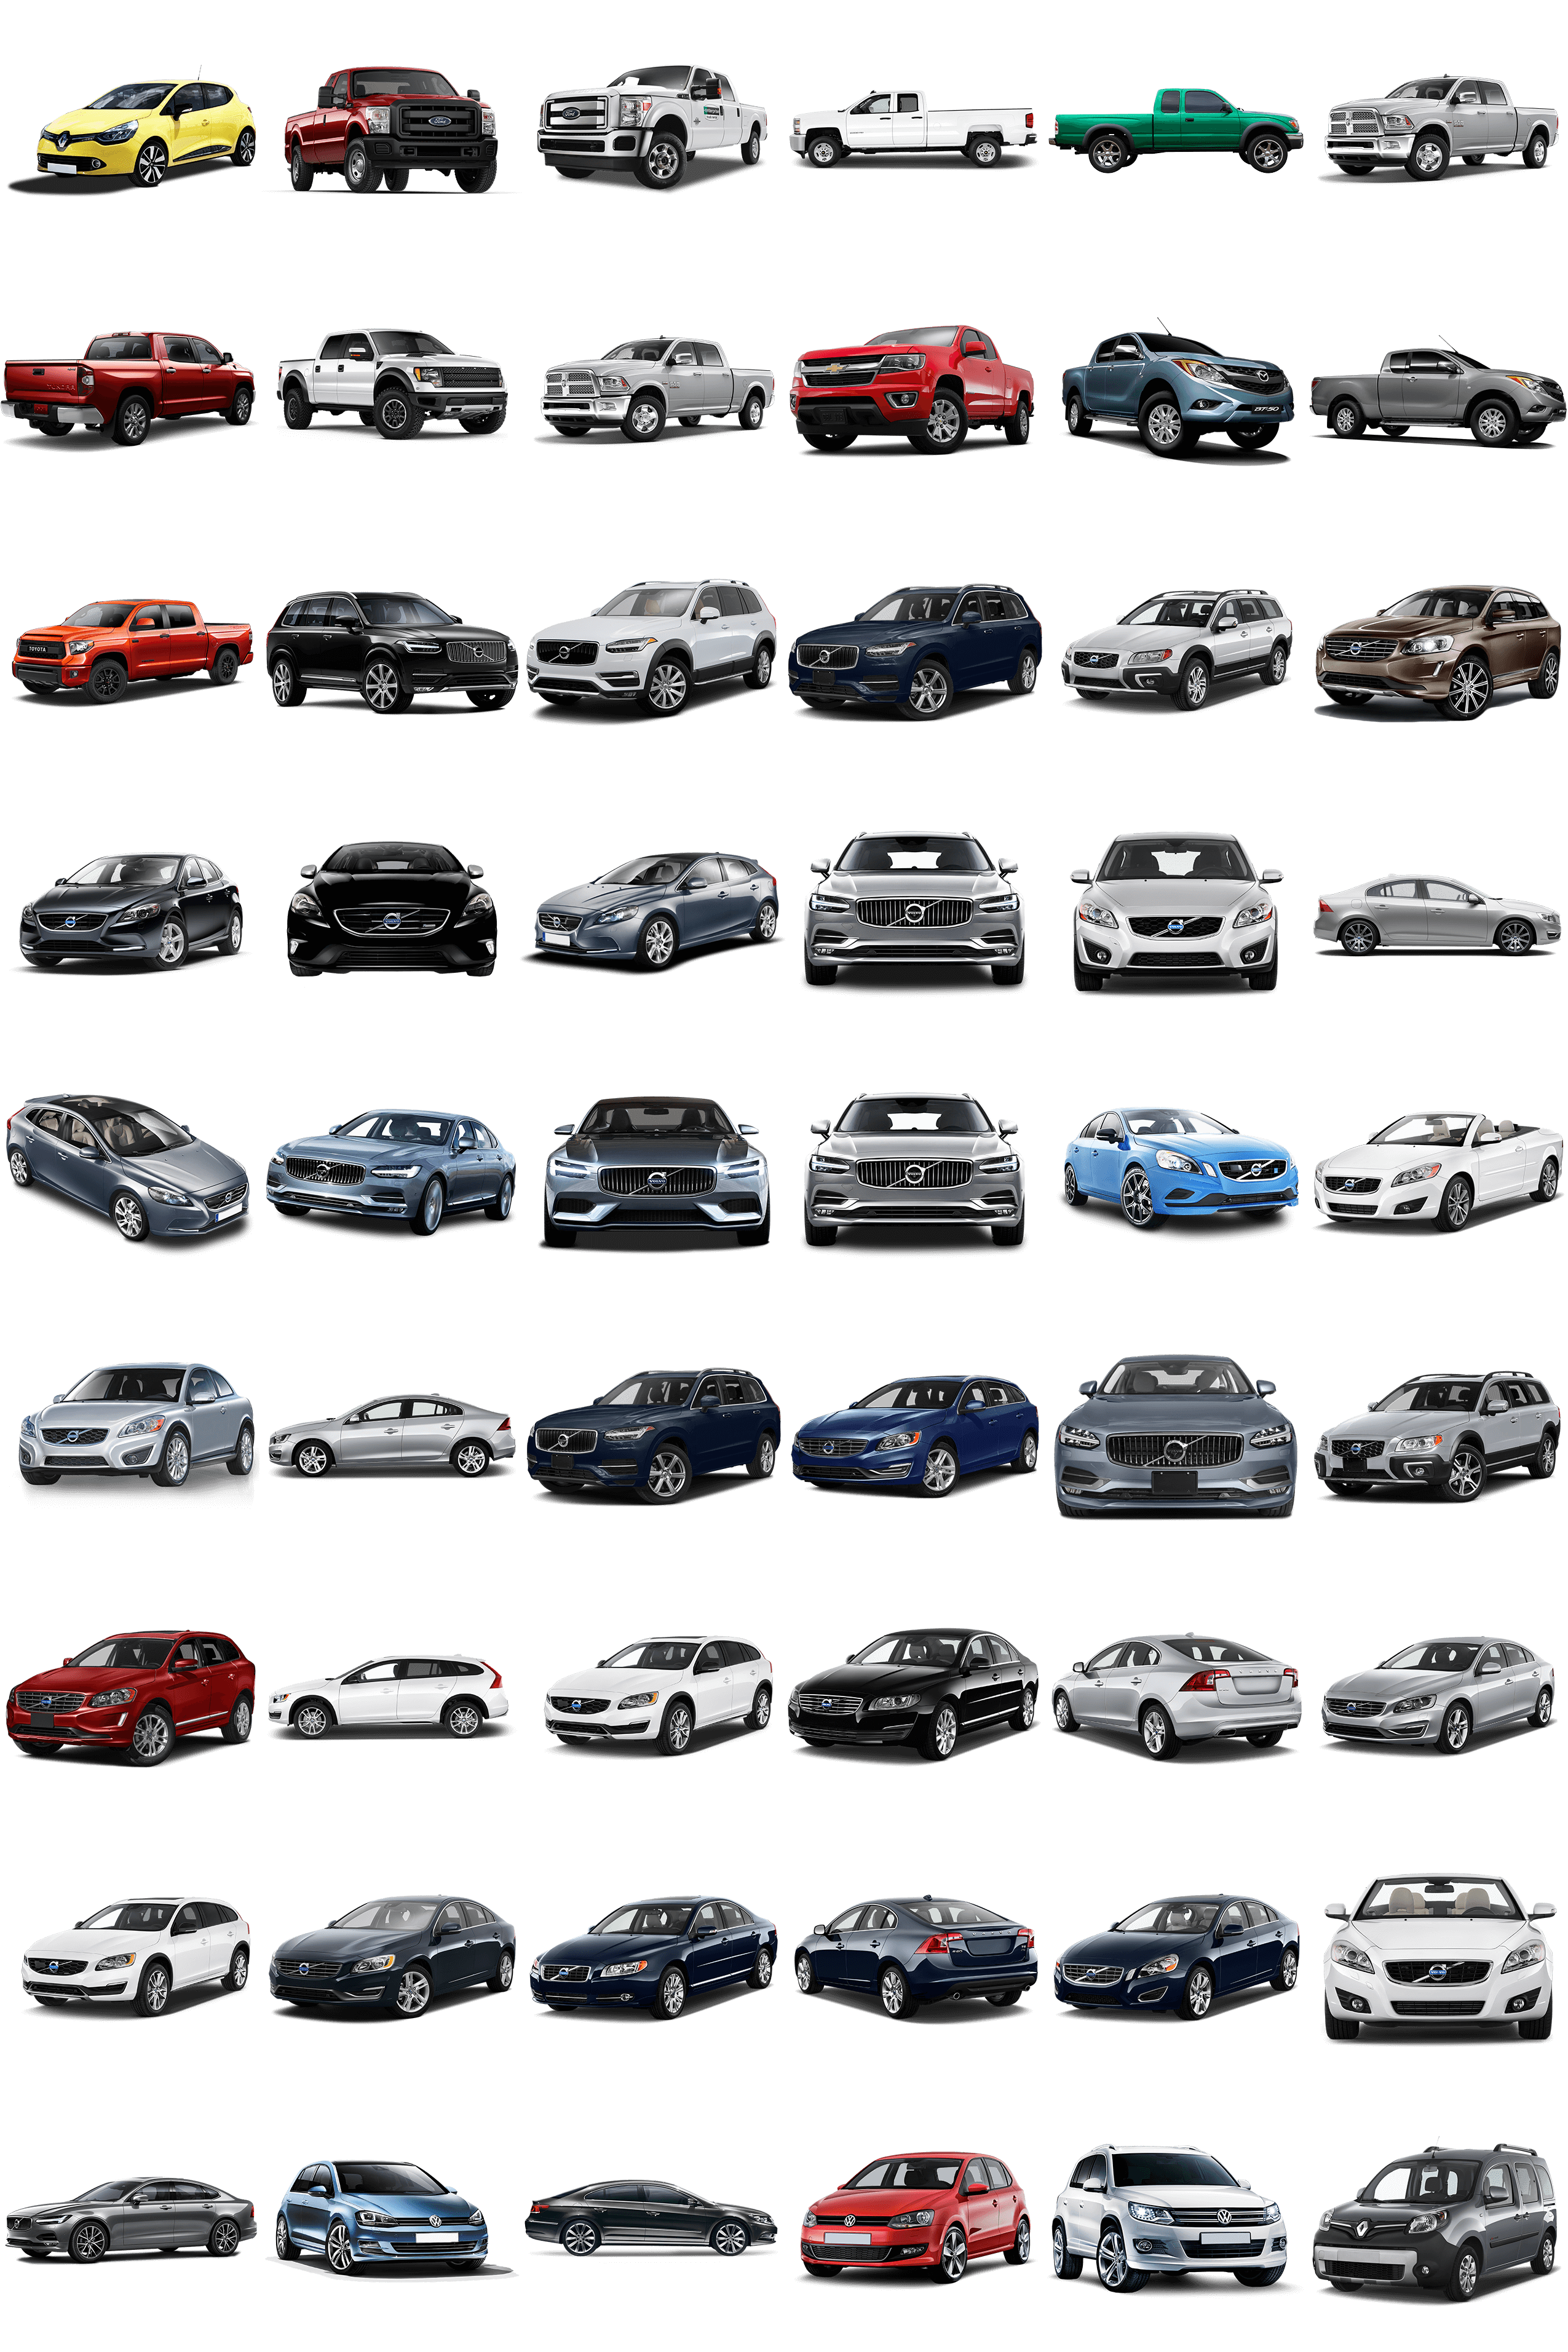 Vehicle Pictures in PNG Format